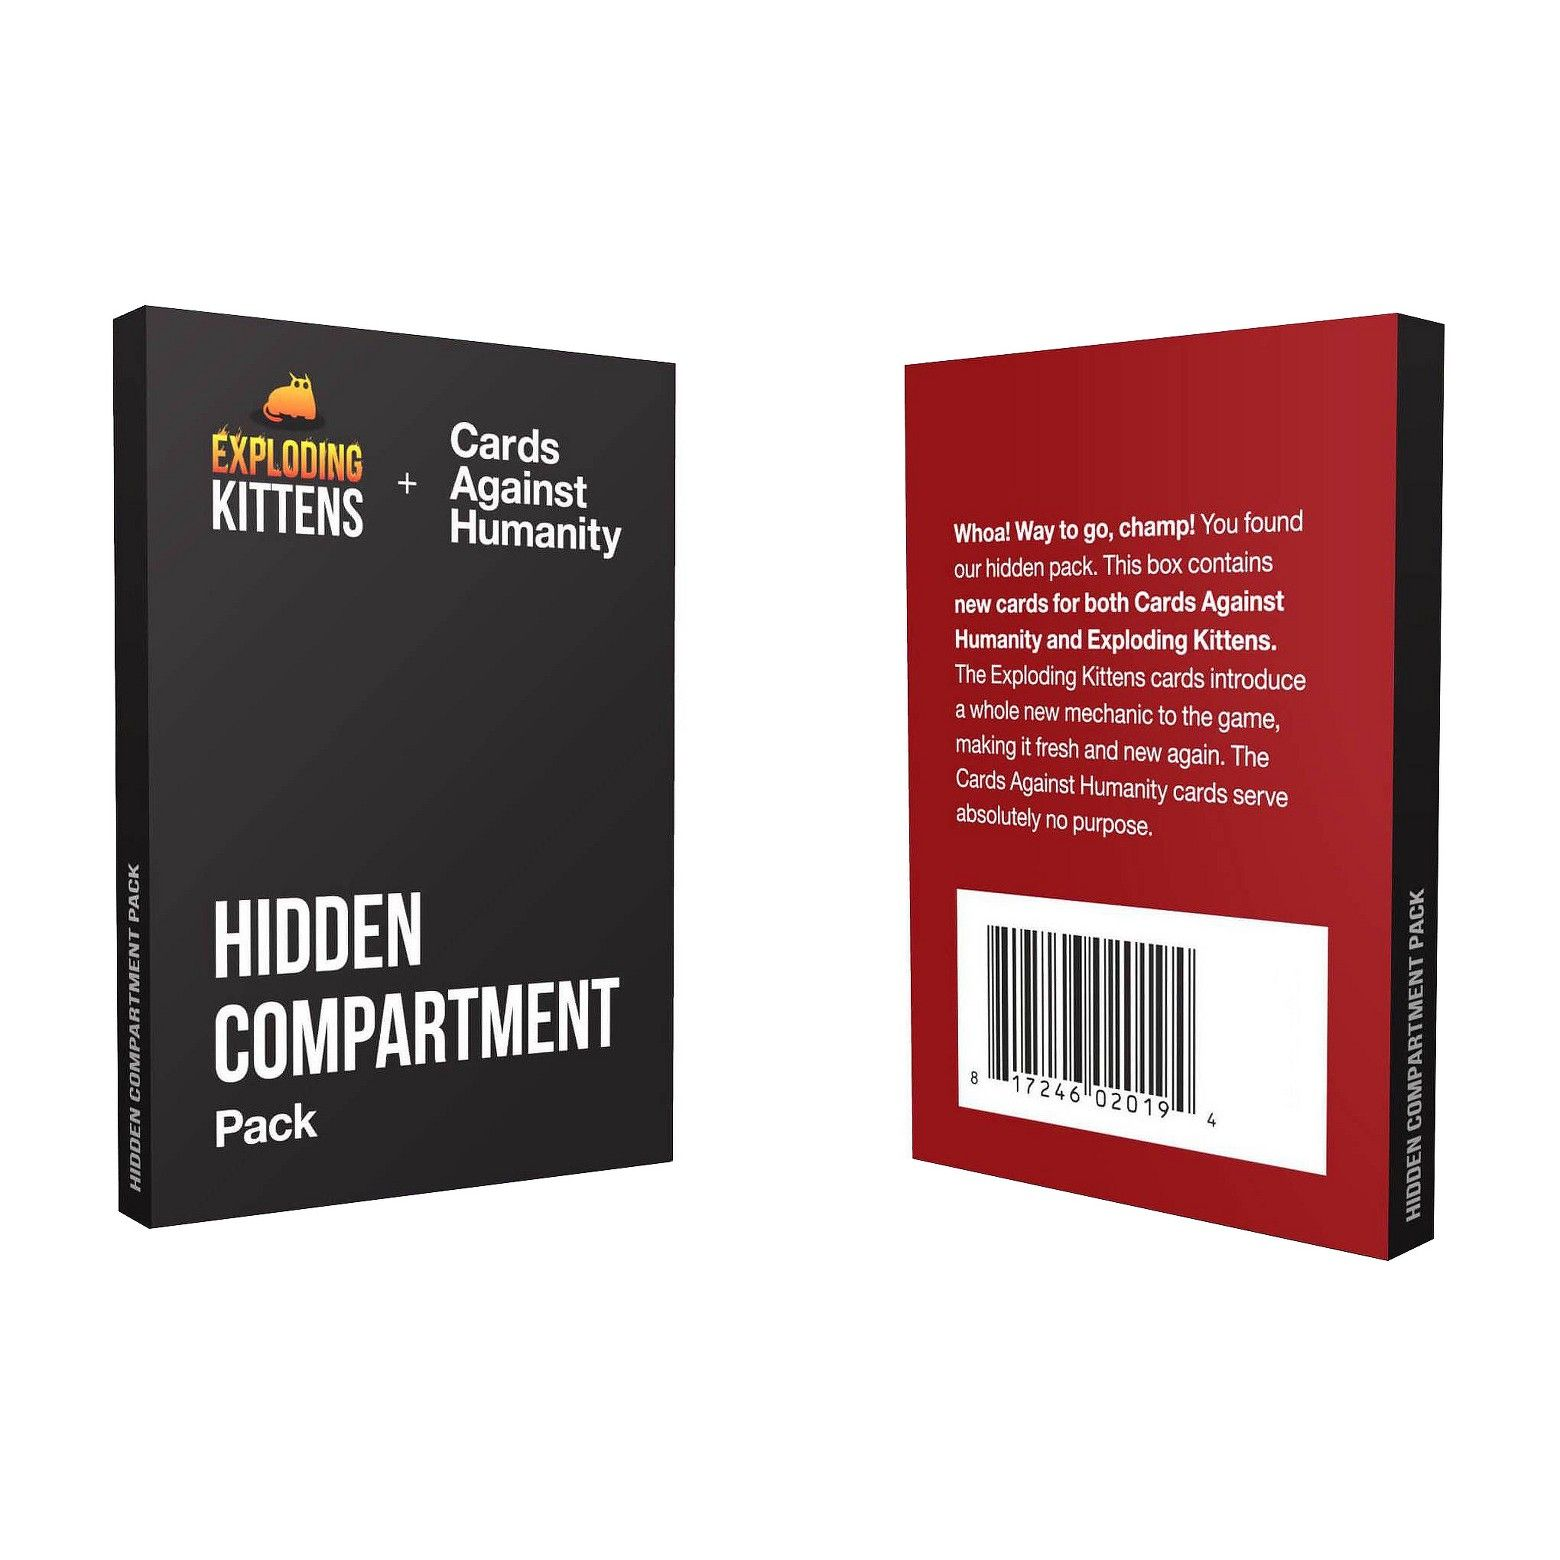 Hidden Compartment Pack Game Hidden Compartments Packing Compartment